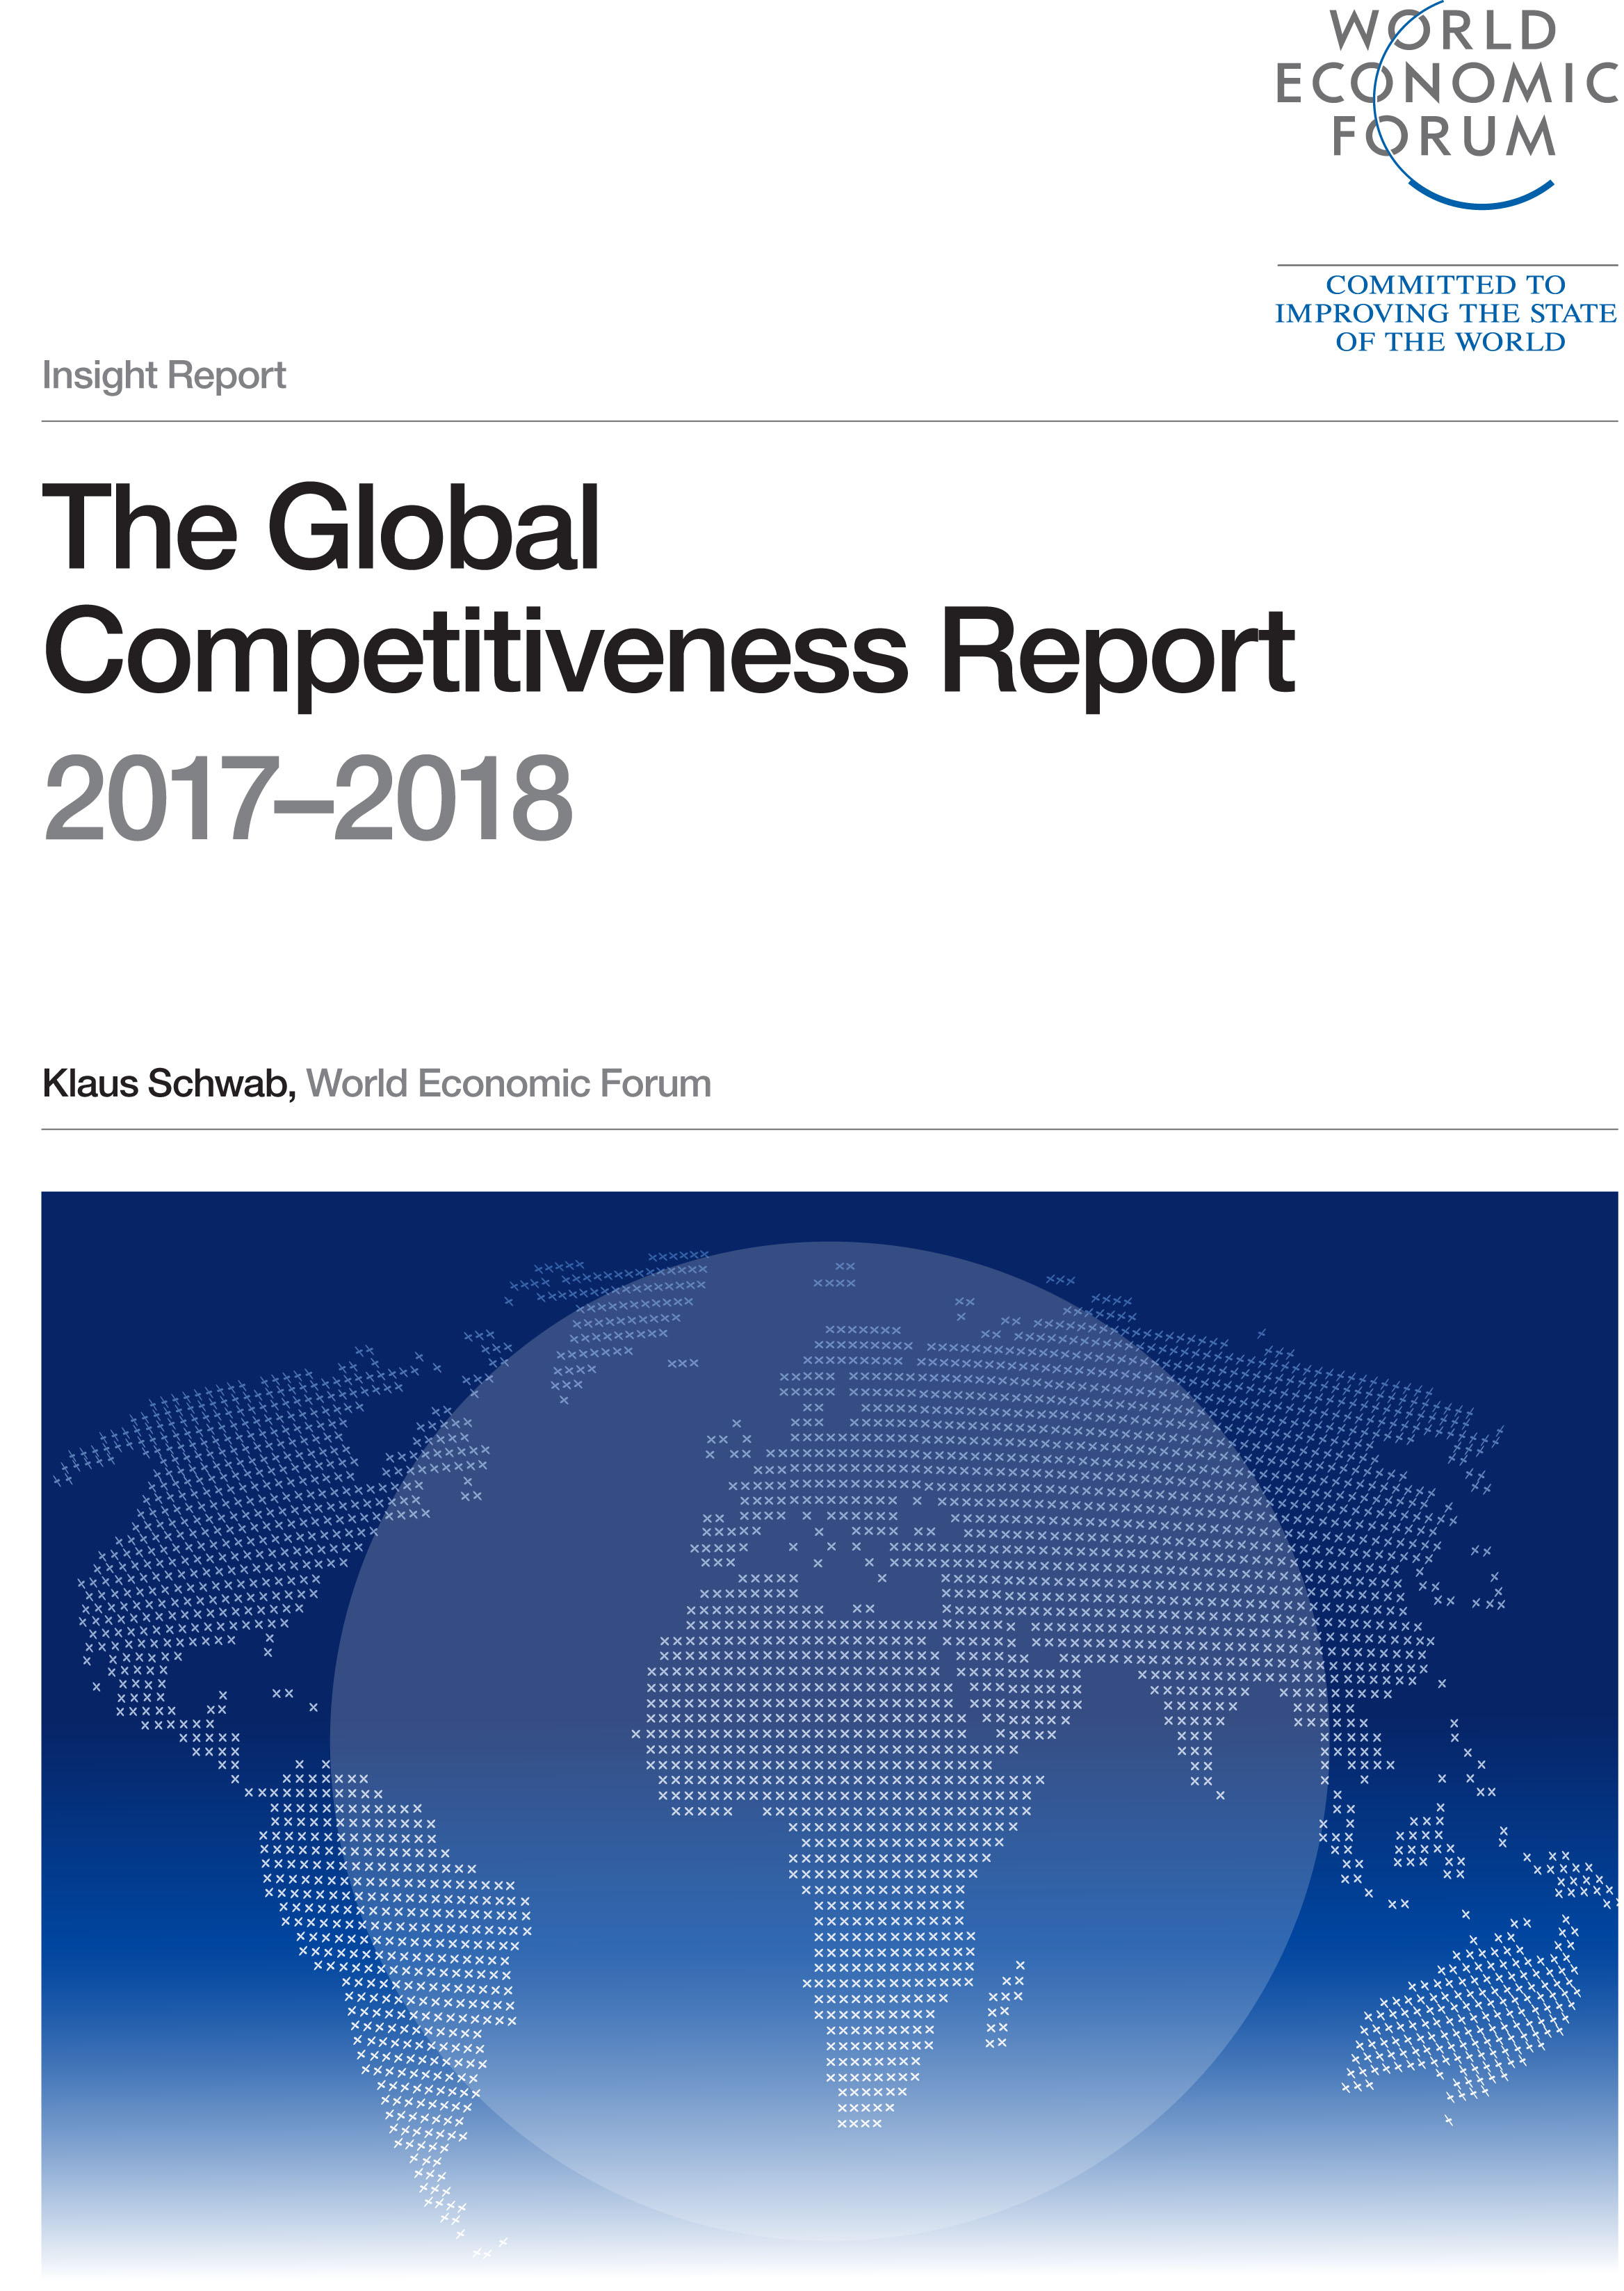 theglobalcompetitivenessreport20172018-cover